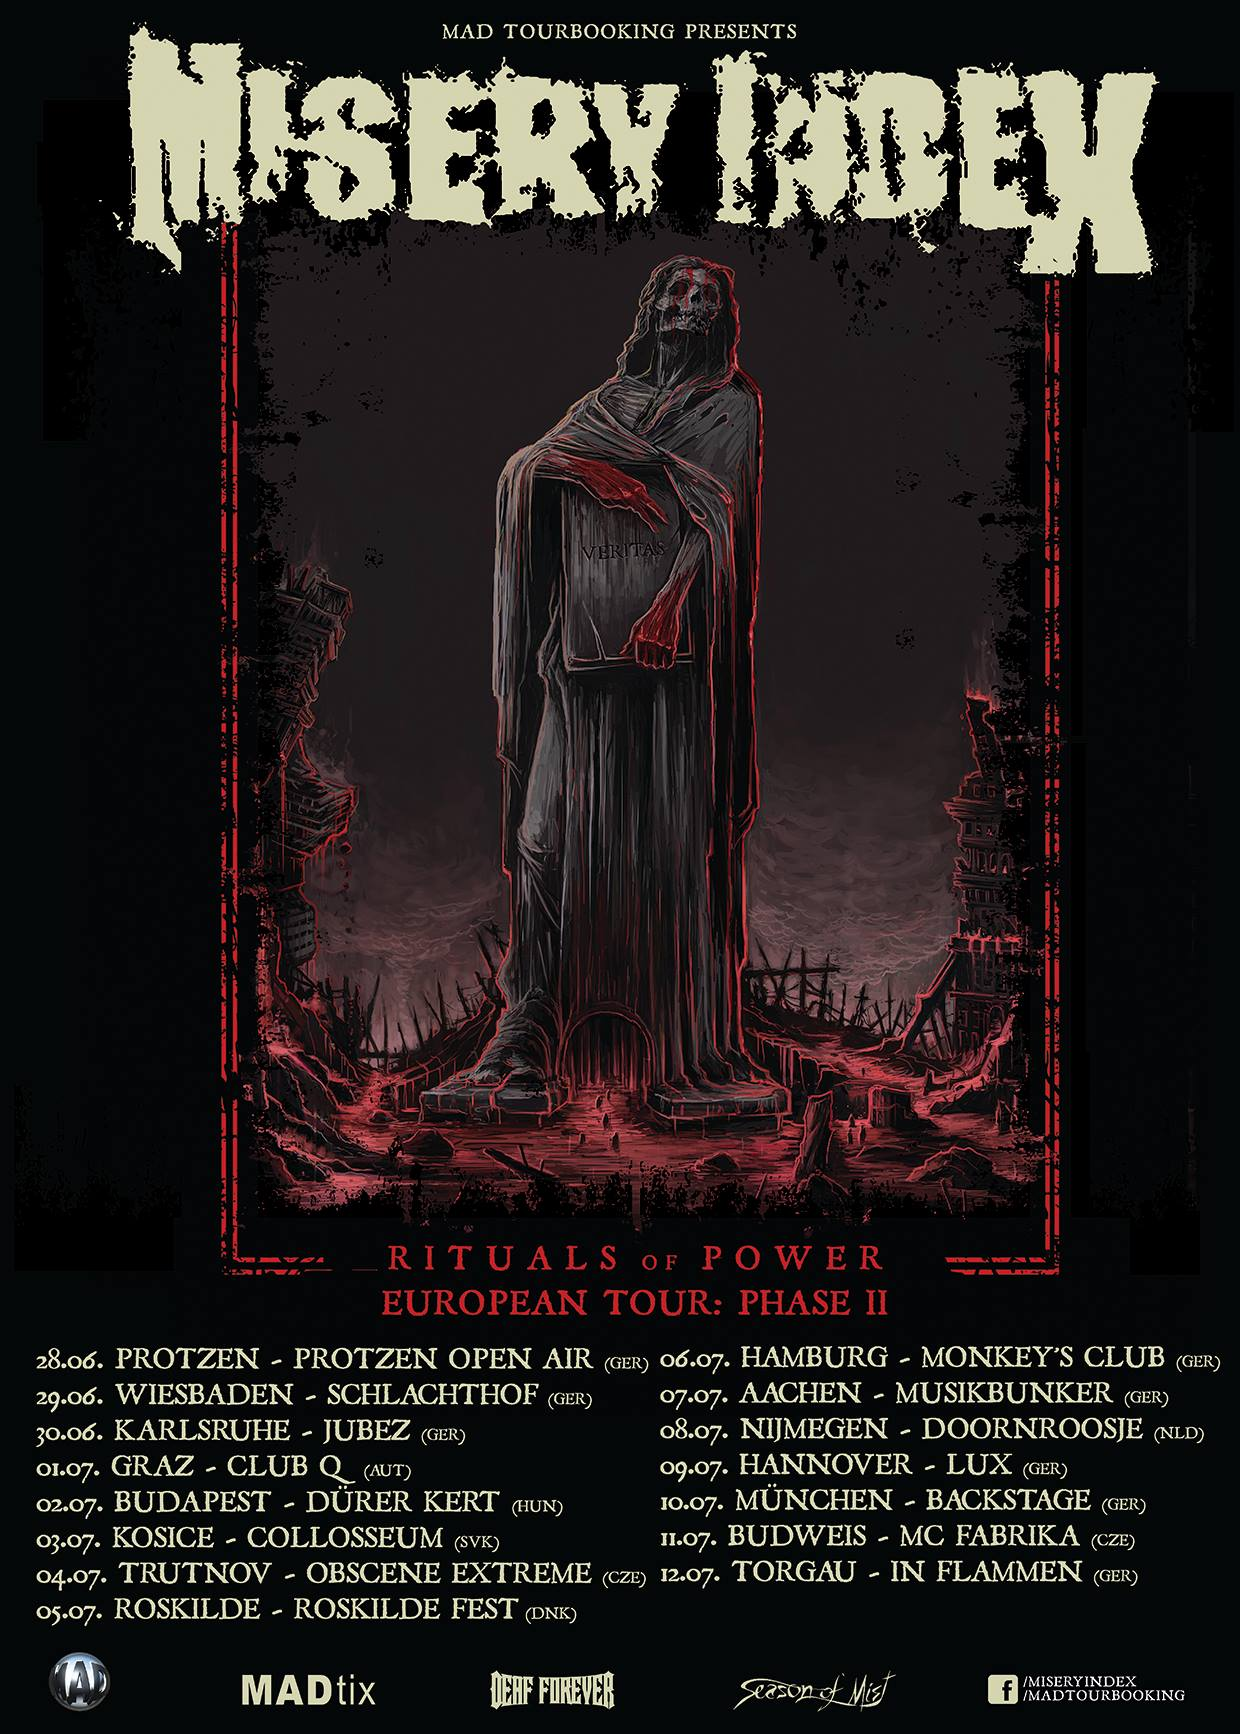 Misery Index - Rituals of Power European Tour: Phase II